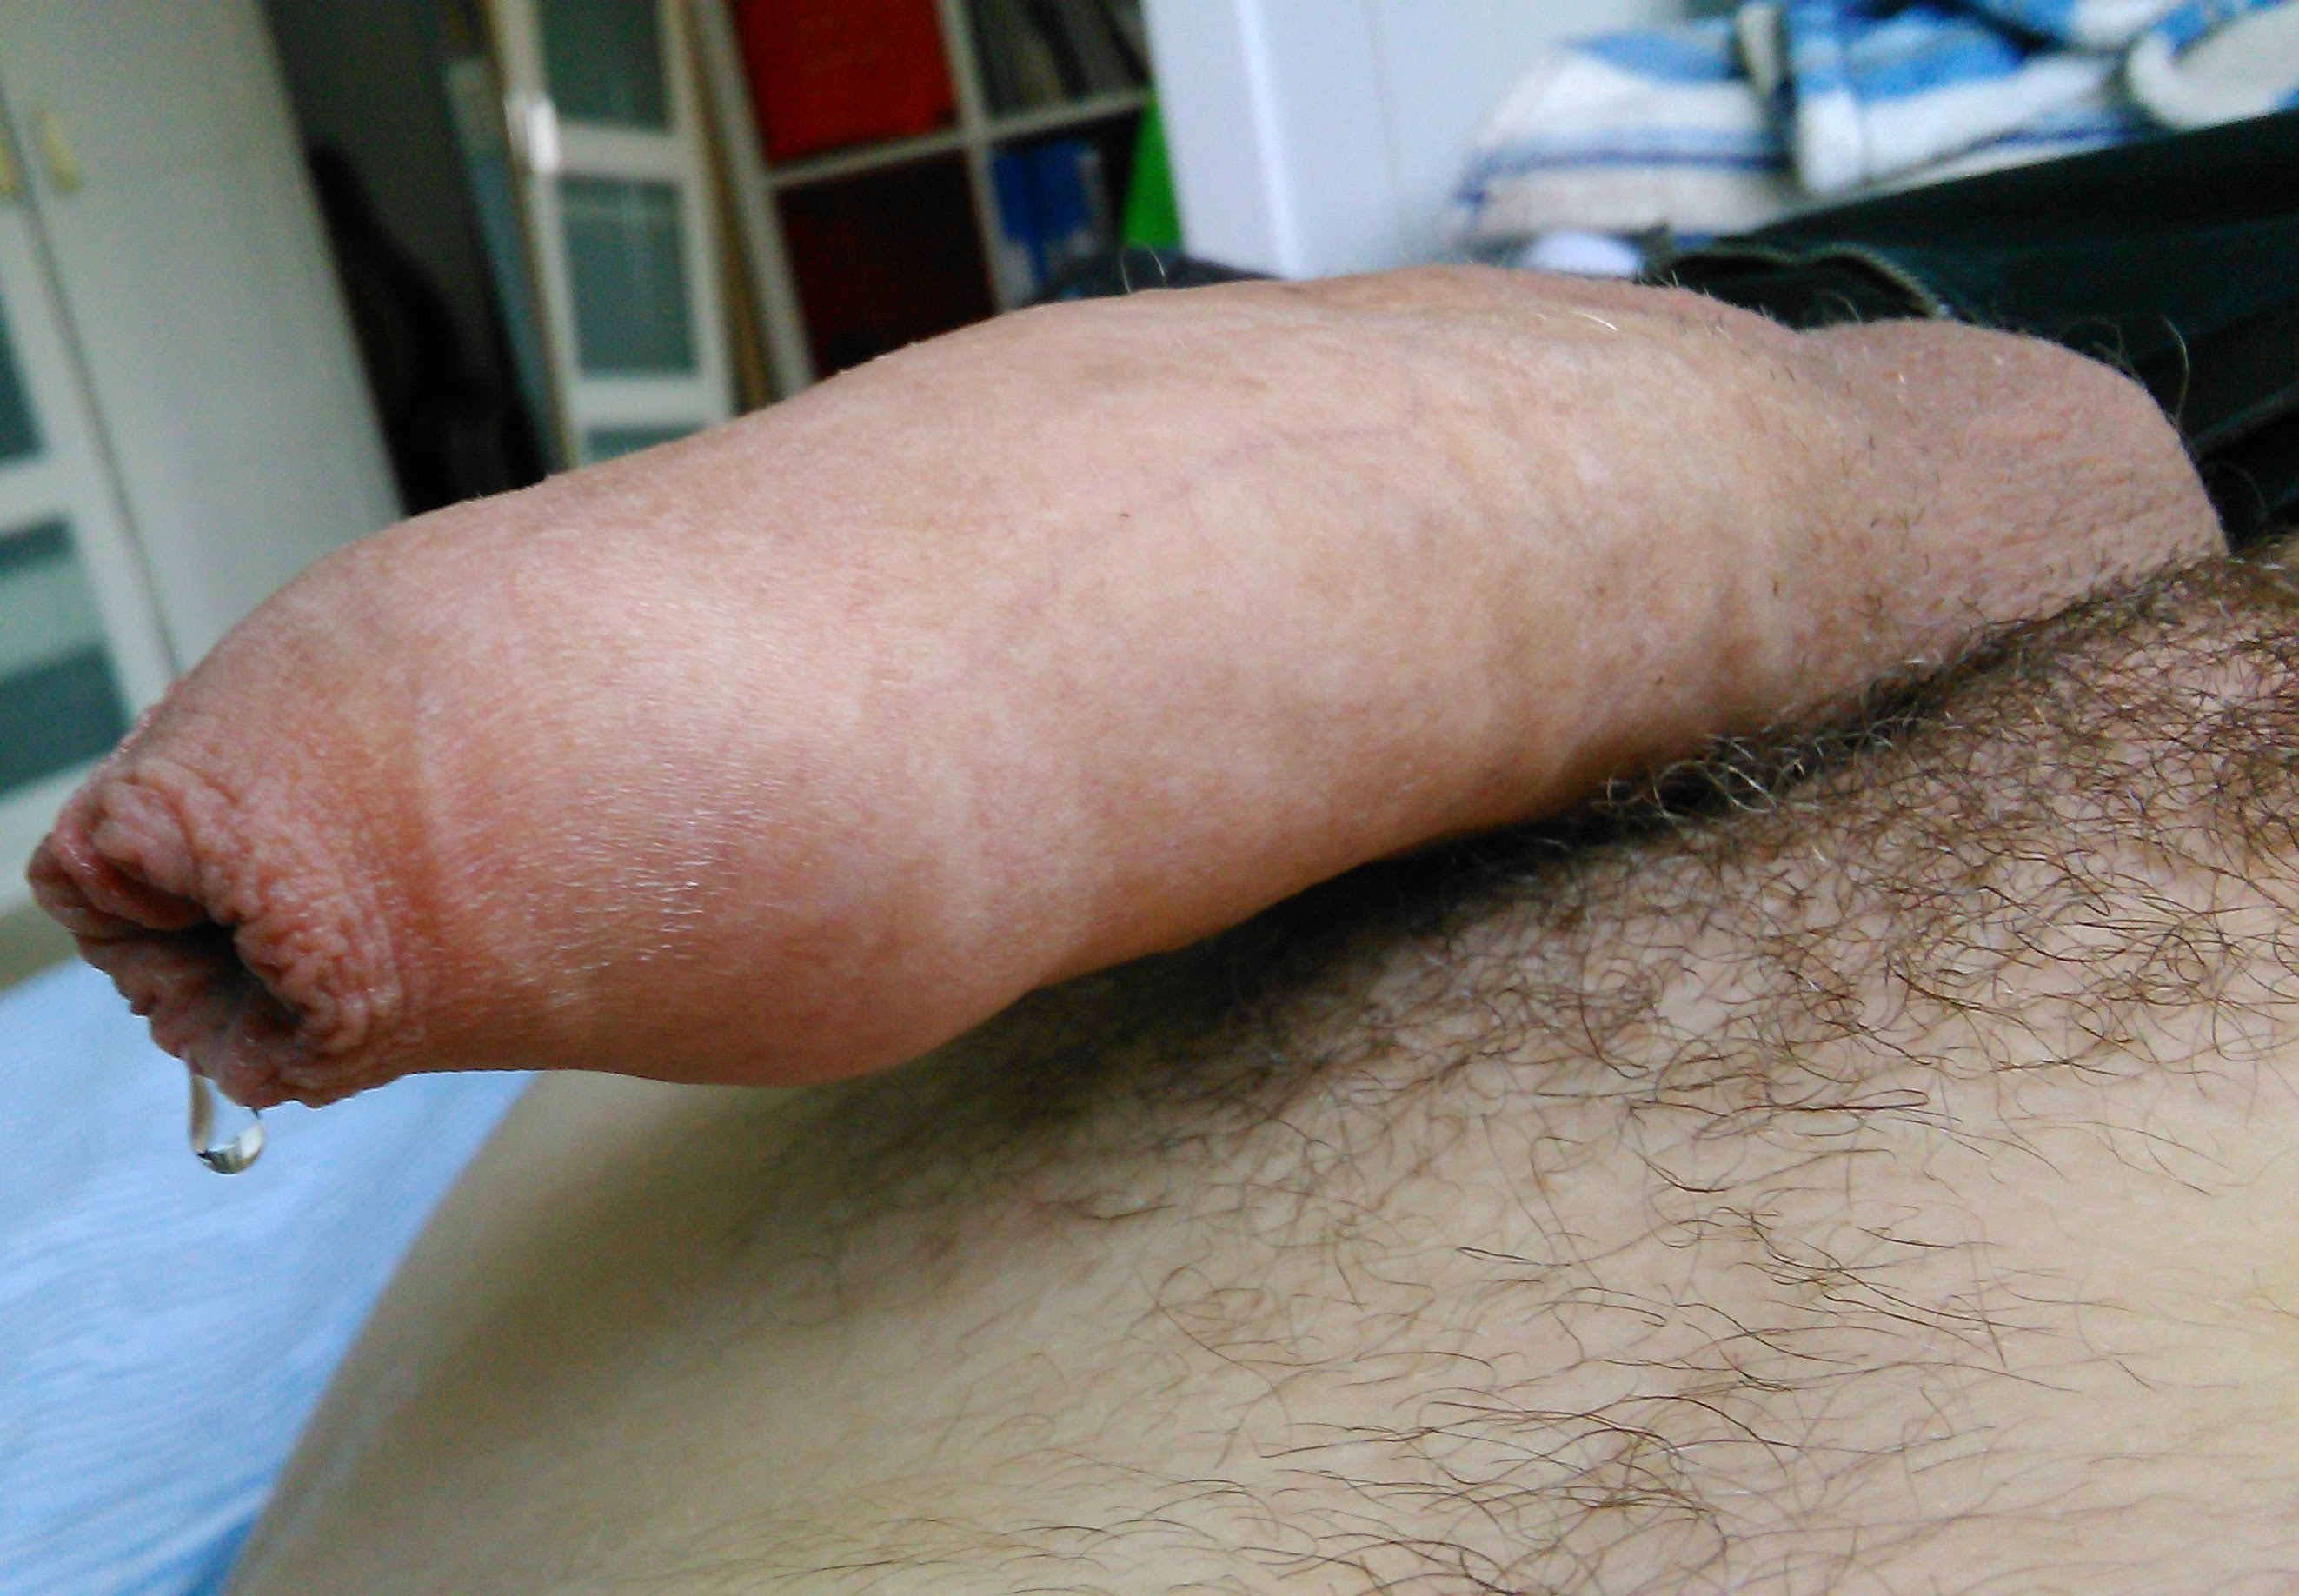 Hard cock and balls precum